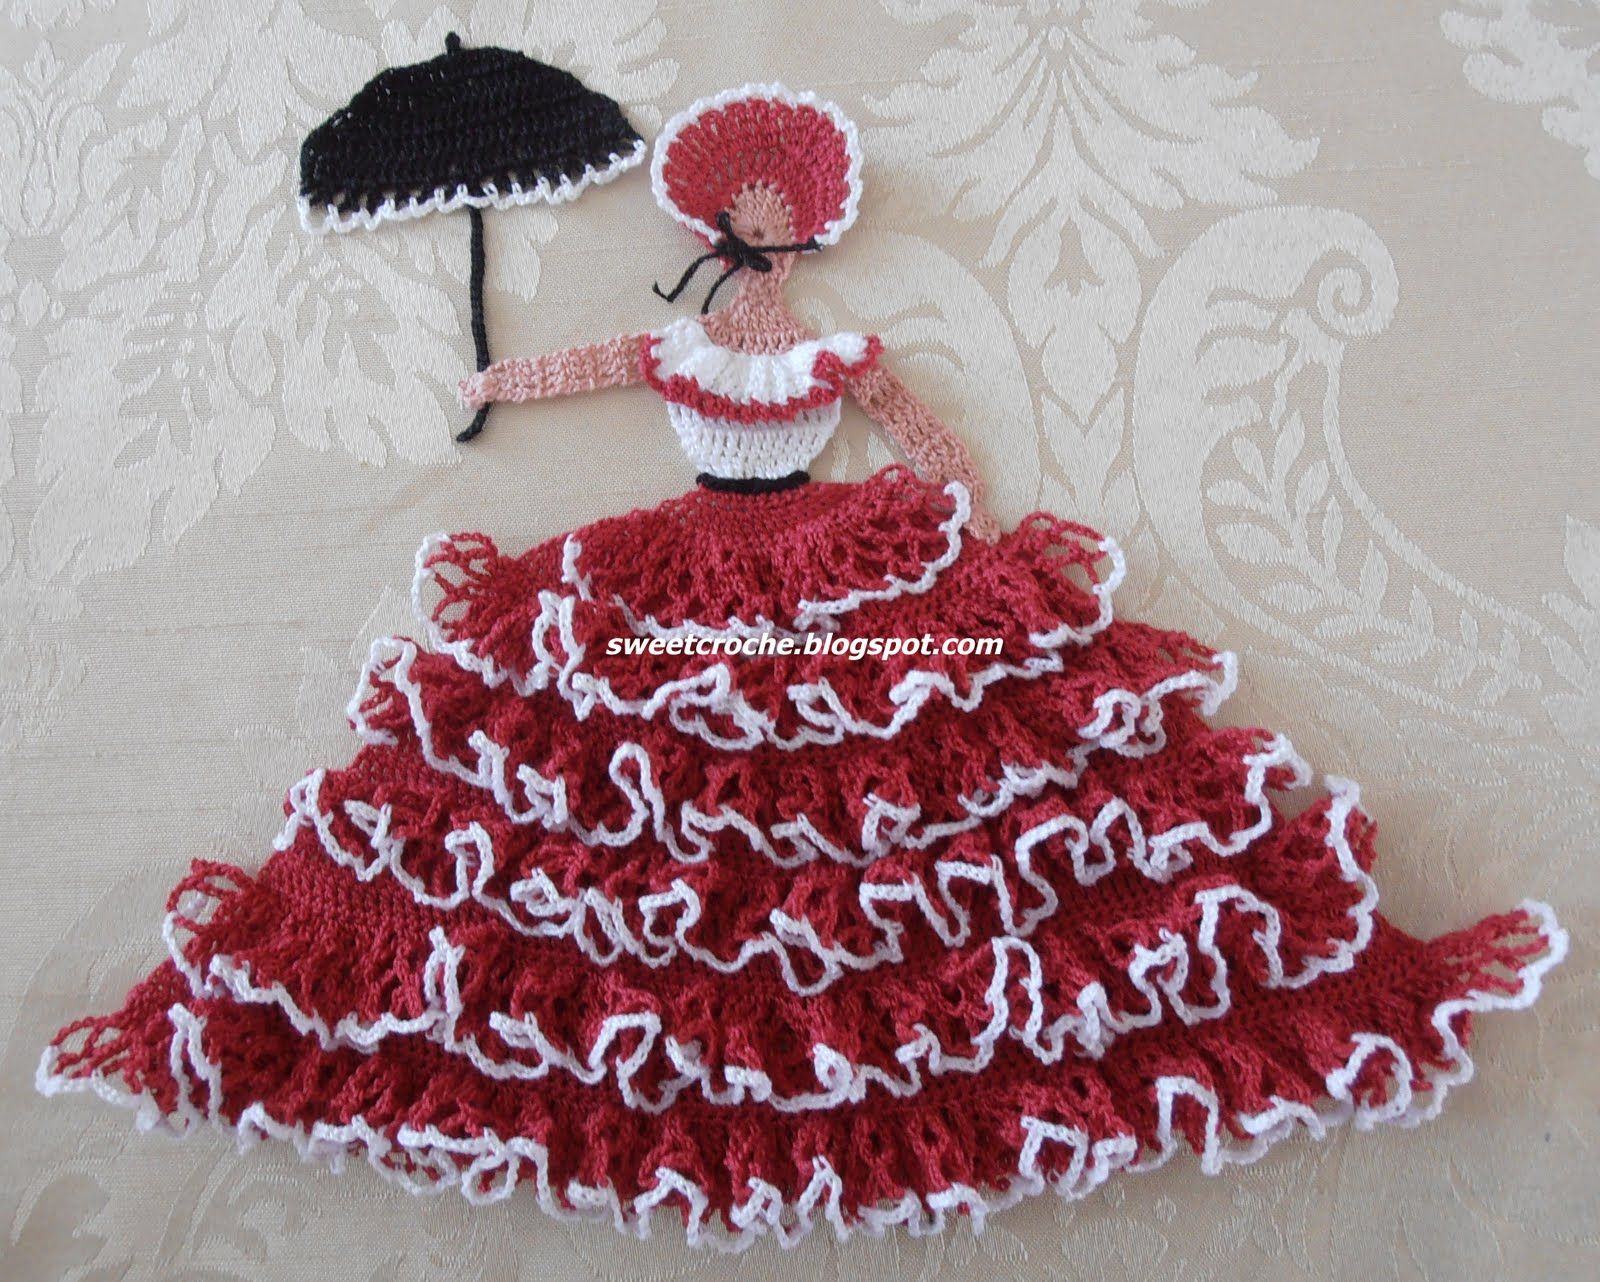 sweetcroche crinoline lady in red crochet everything and more pinterest. Black Bedroom Furniture Sets. Home Design Ideas